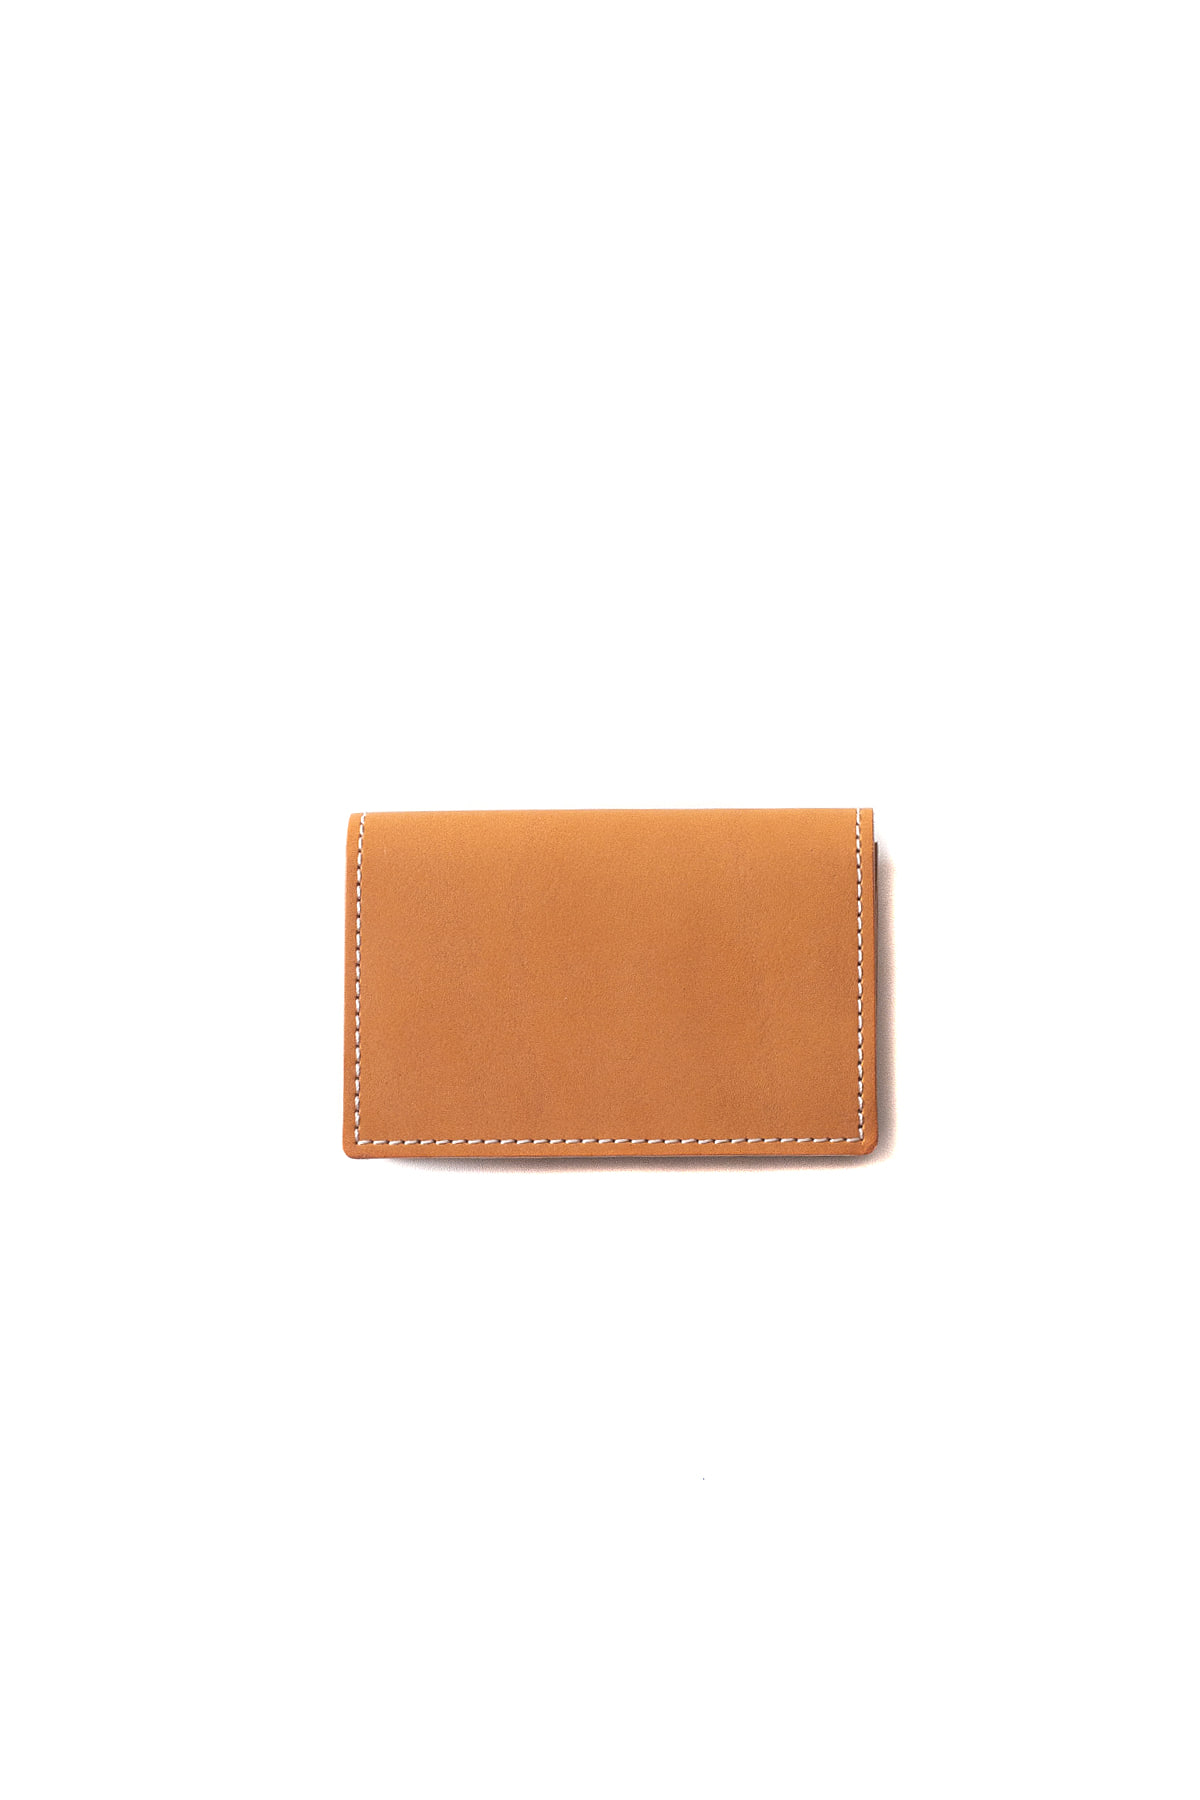 Hender Scheme : Folded Card Case (Natural)